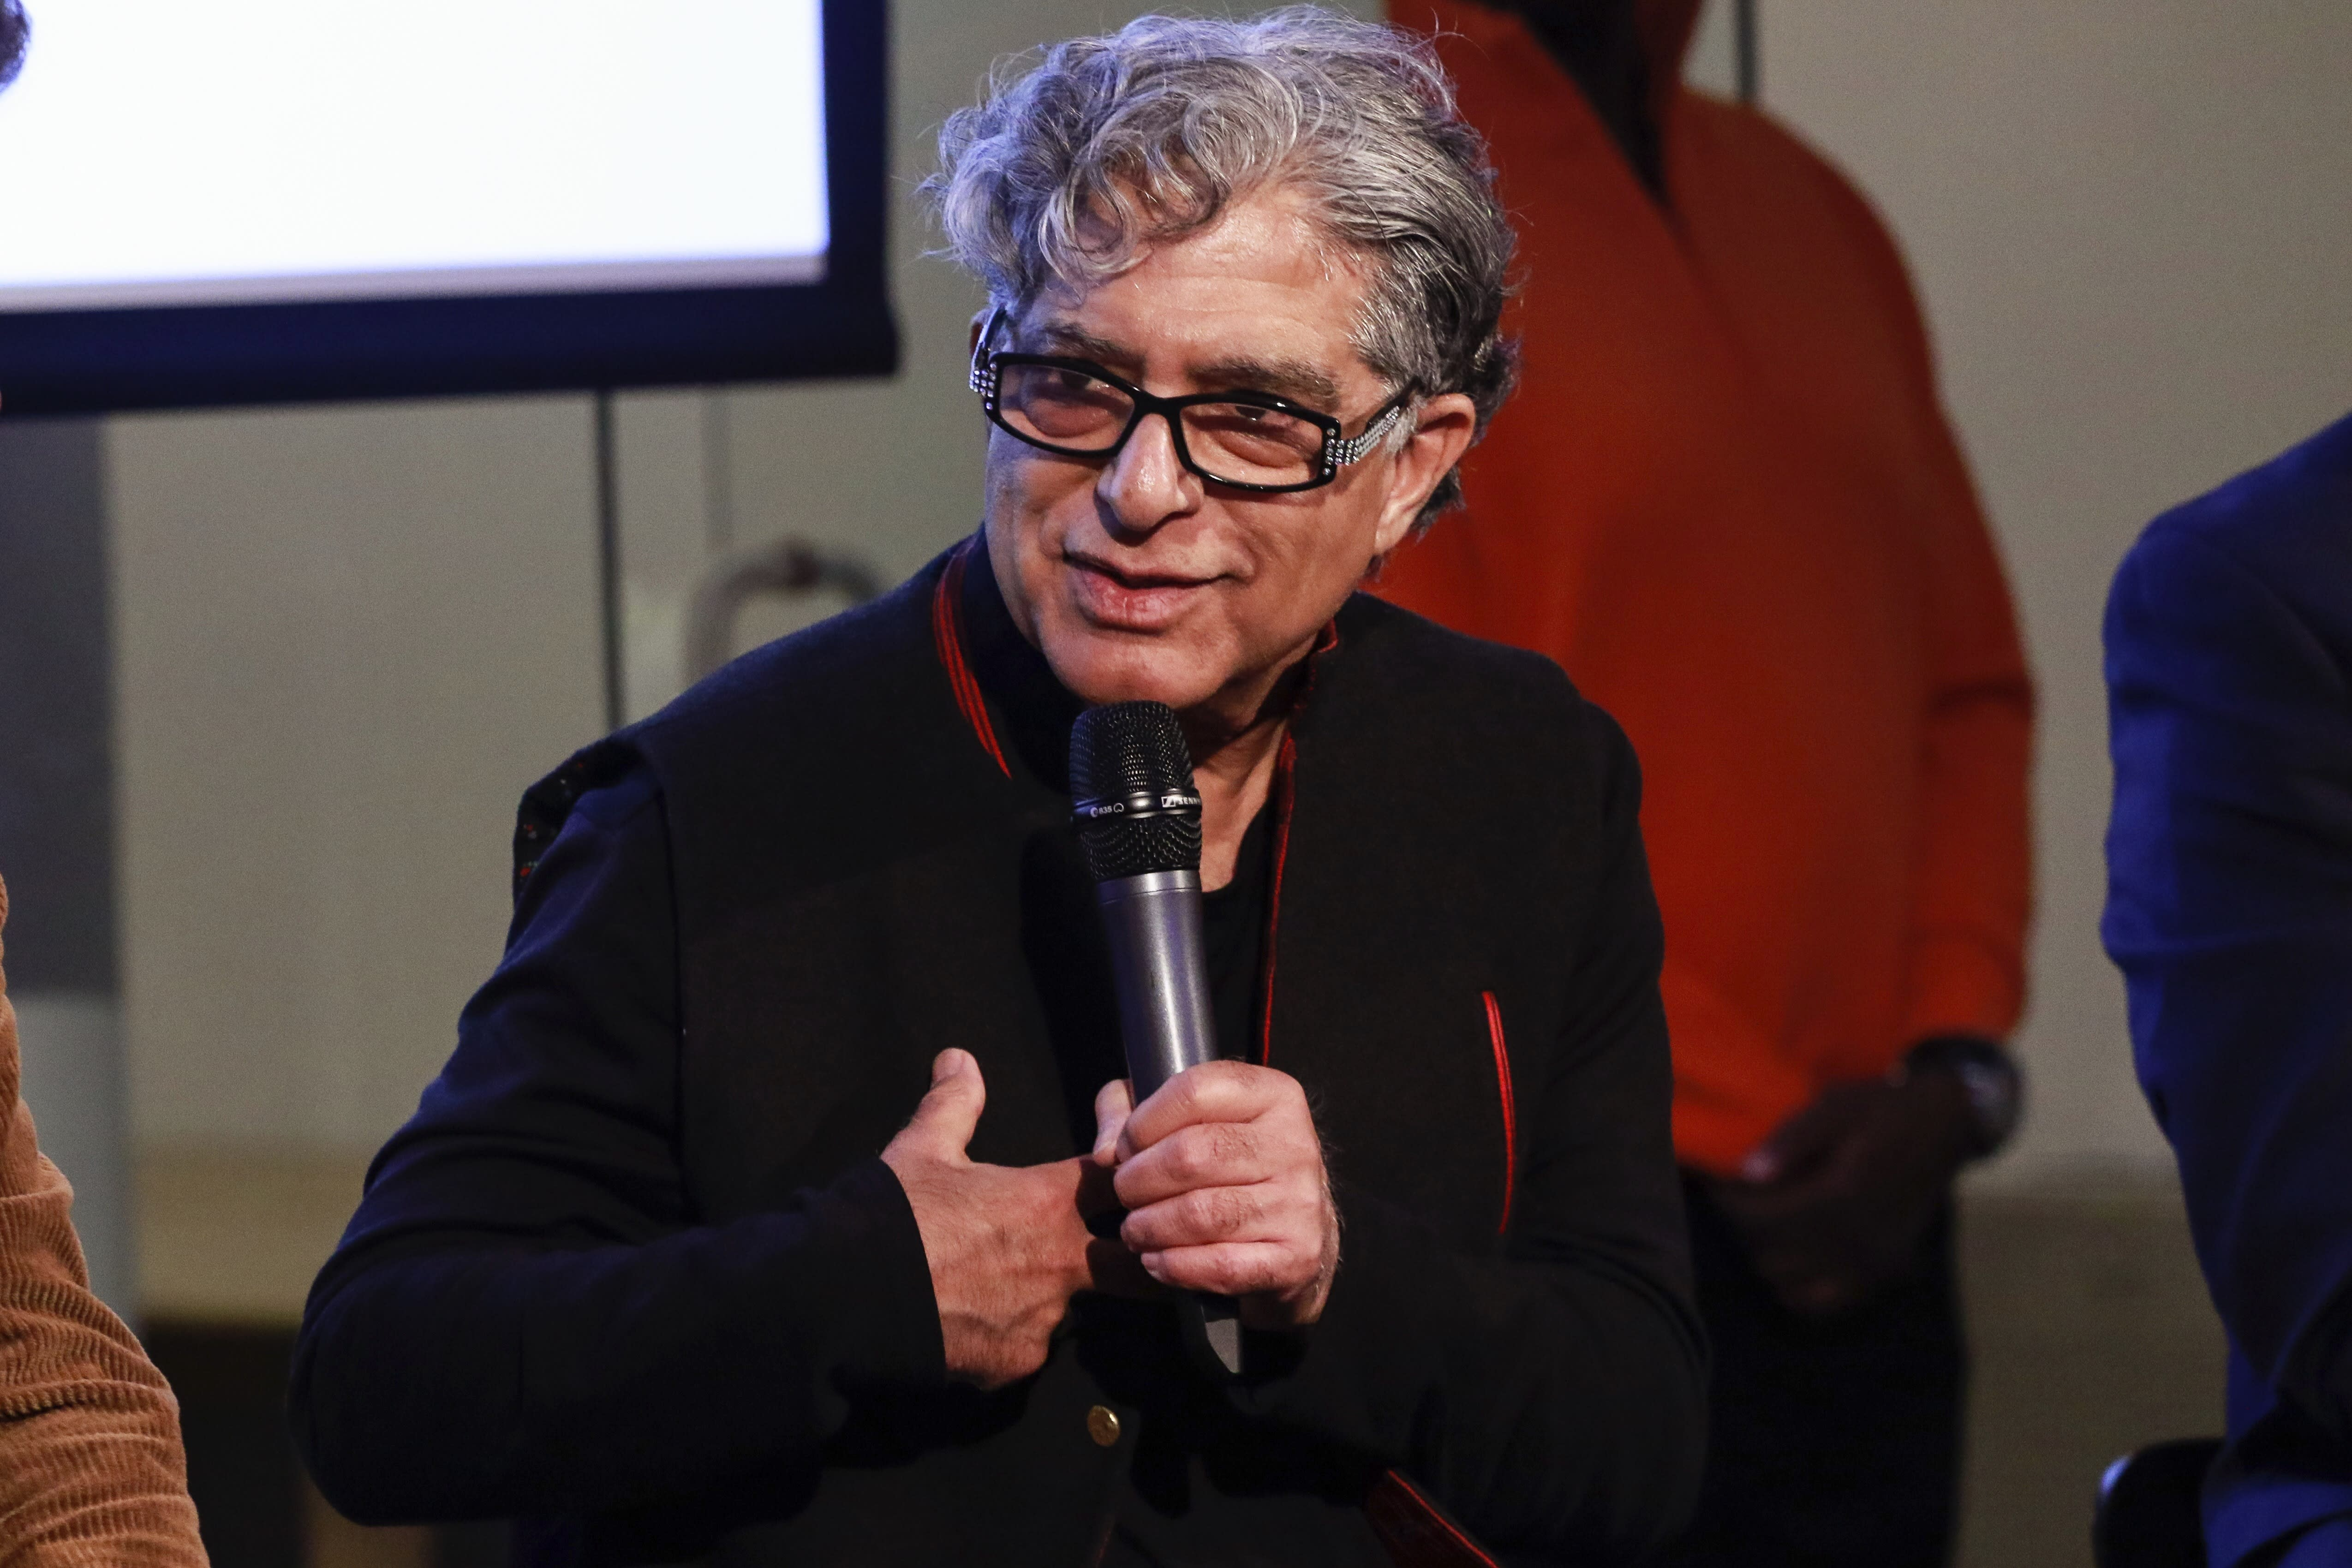 Deepak Chopra on market volatility: Take advantage of panicky investors